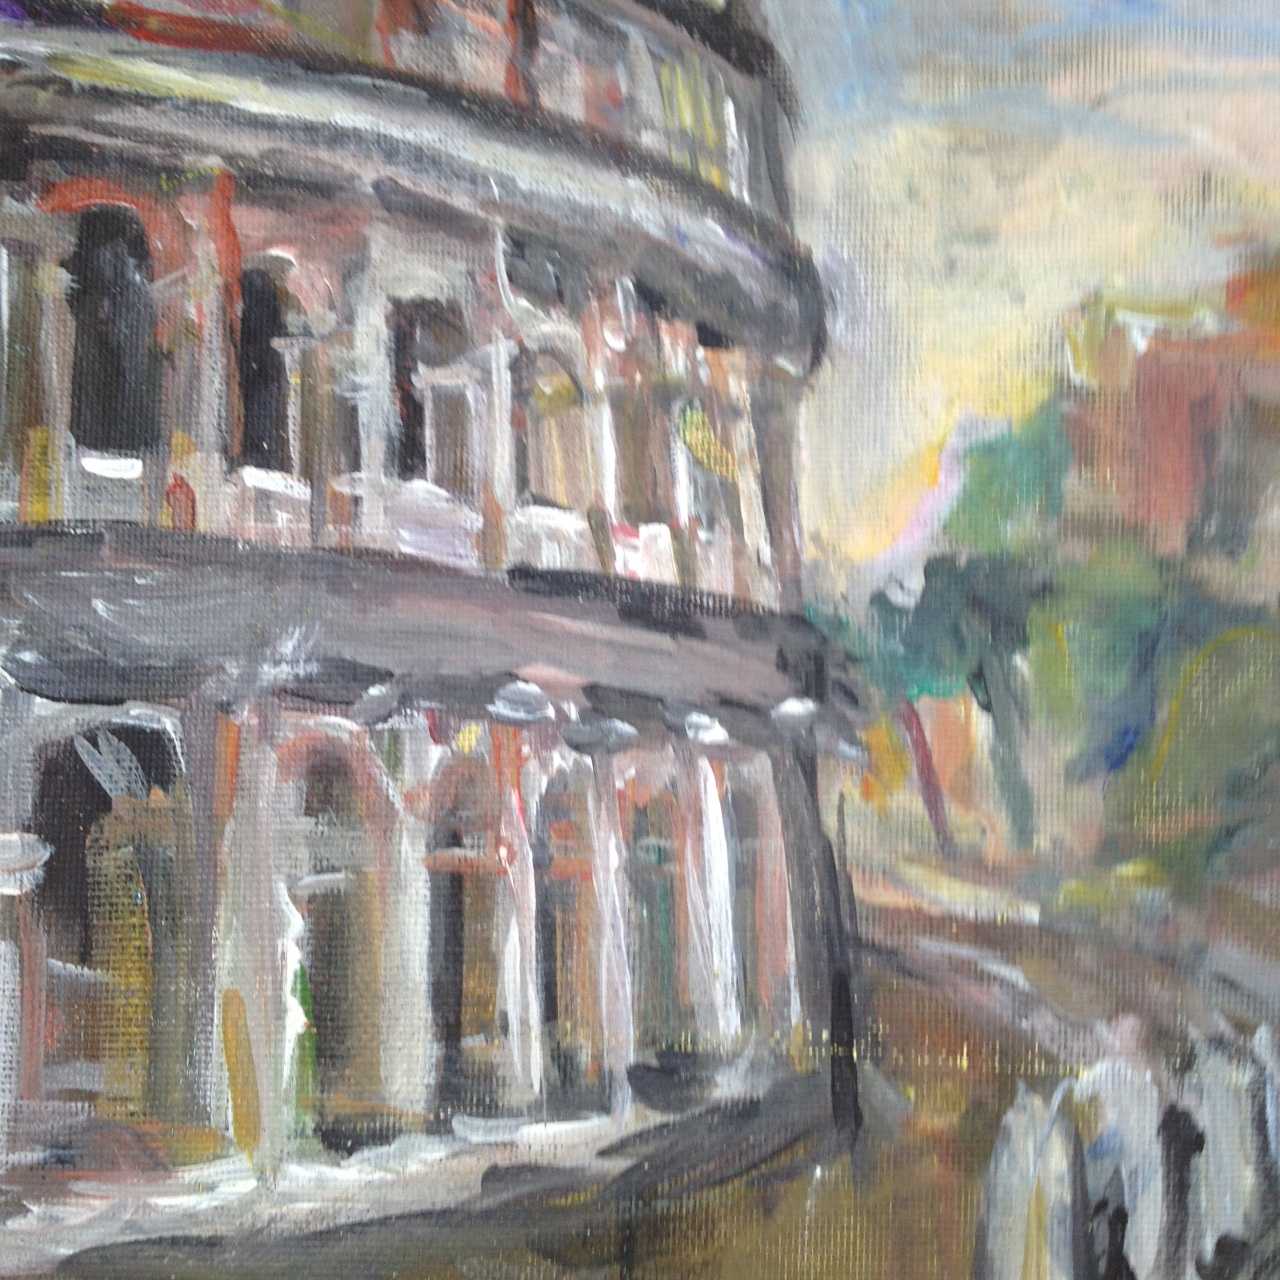 Colosseo-at-Sunset.JPG